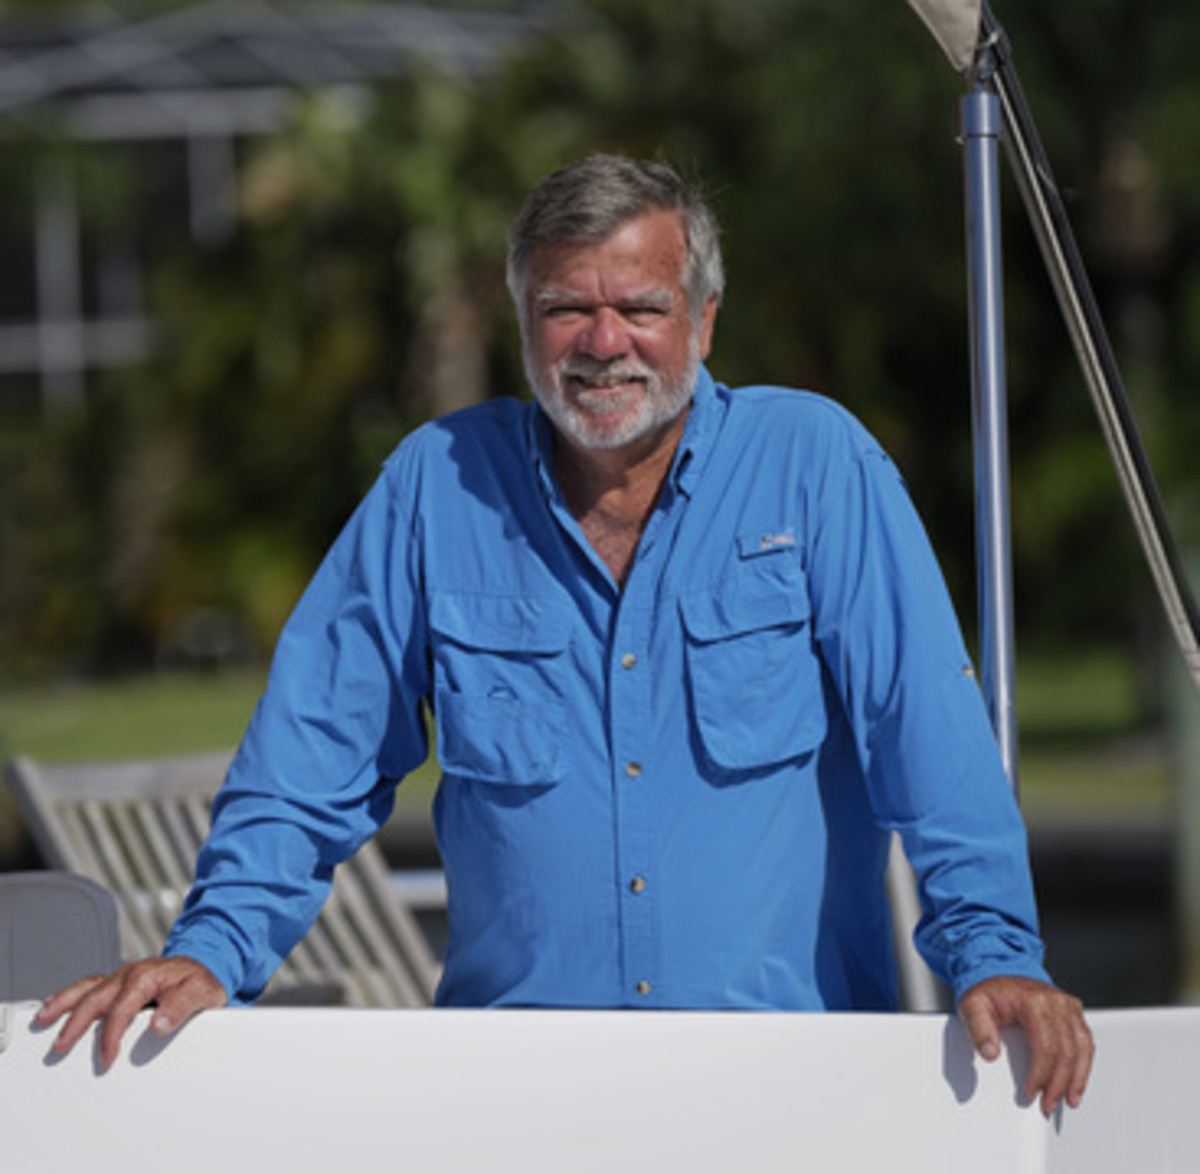 Ken Fickett. You can meet him at the upcoming TrawlerFests at Kent Island, Maryland and Stuart, Florida.